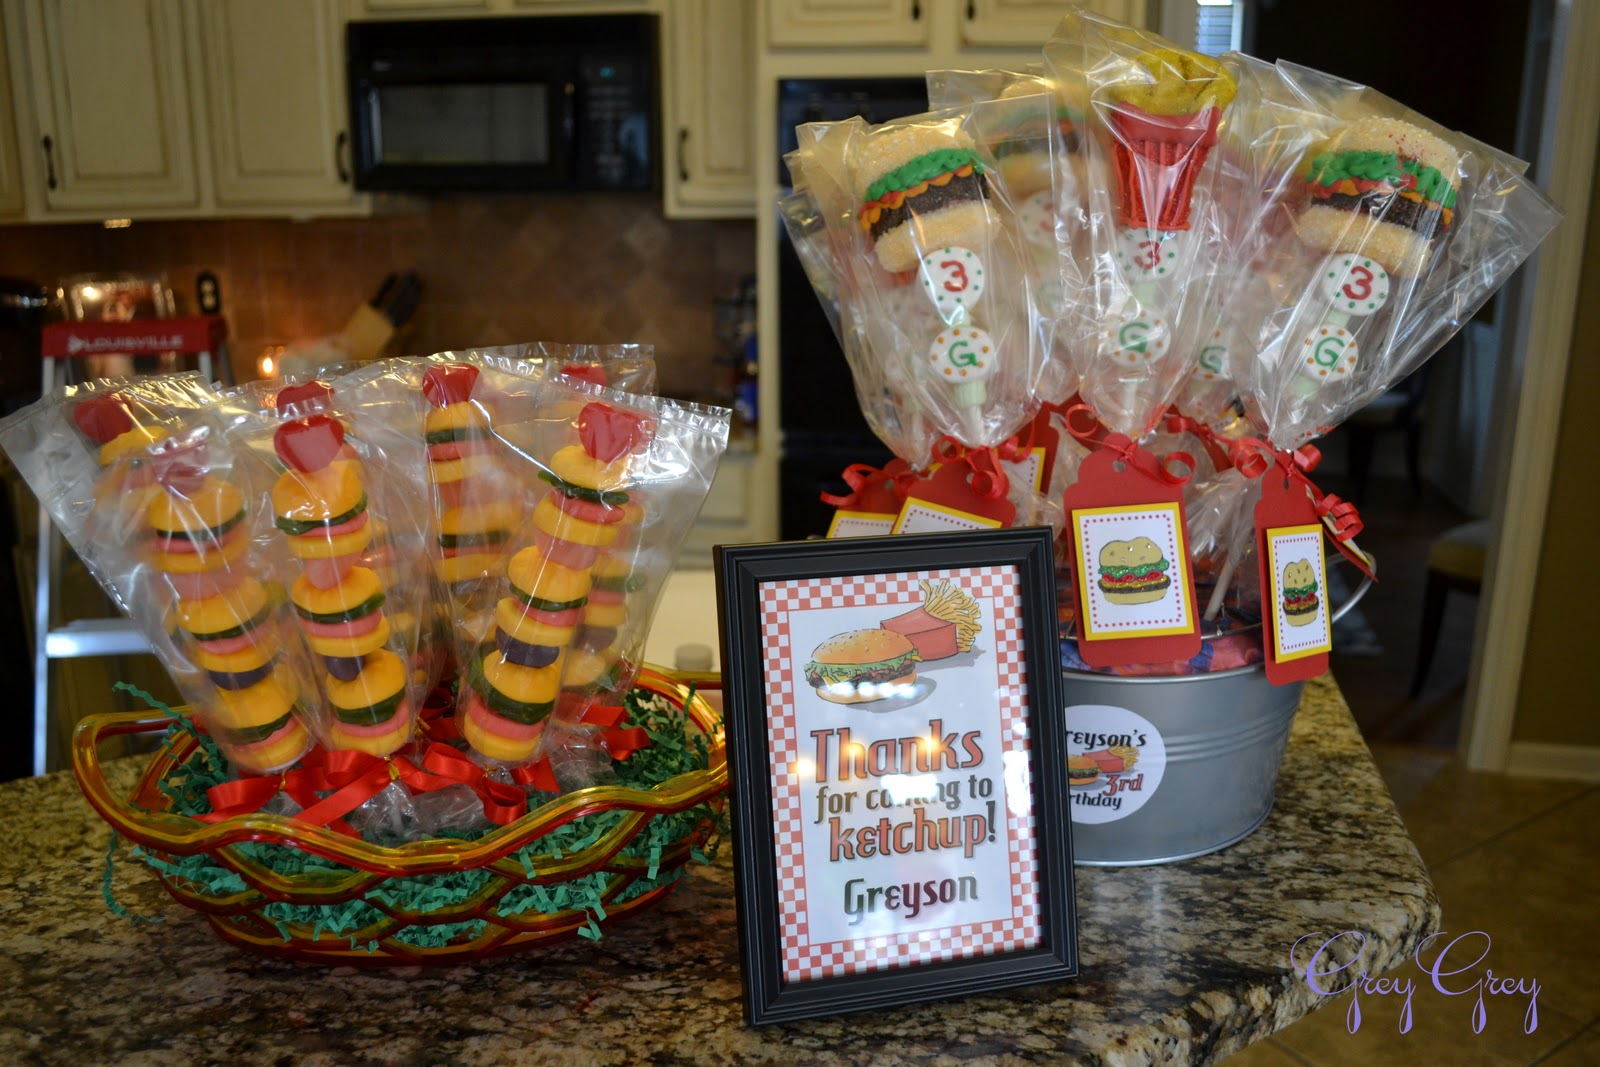 Beach Pail Party Favors Saying Thank You For Coming: GreyGrey Designs: {My Parties} Greyson's Hamburger Themed